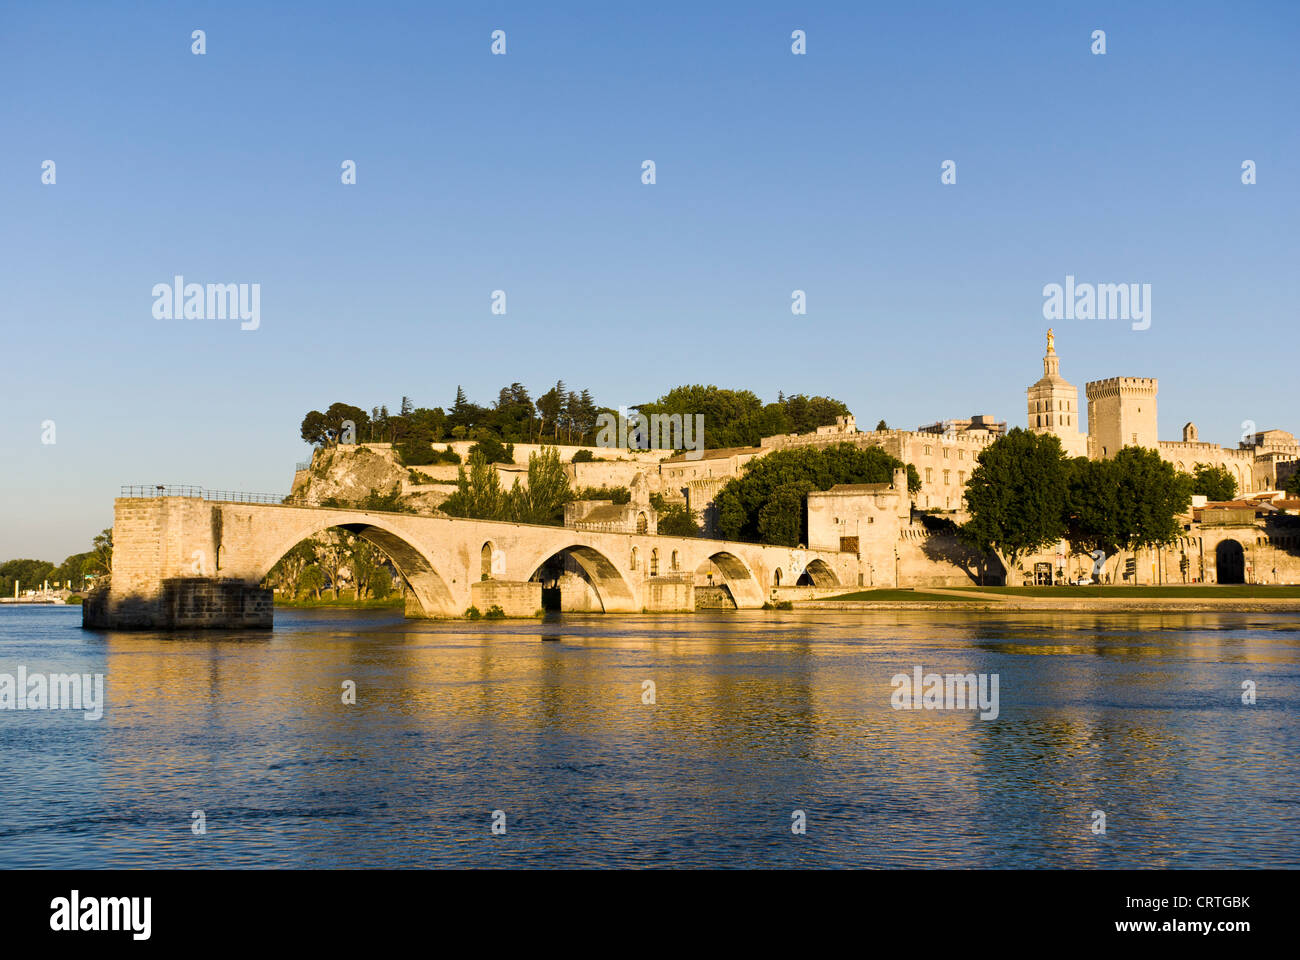 The Pont Saint-Bénezet, also known as the Pont d'Avignon, is a famous medieval bridge in Avignon, in southern - Stock Image